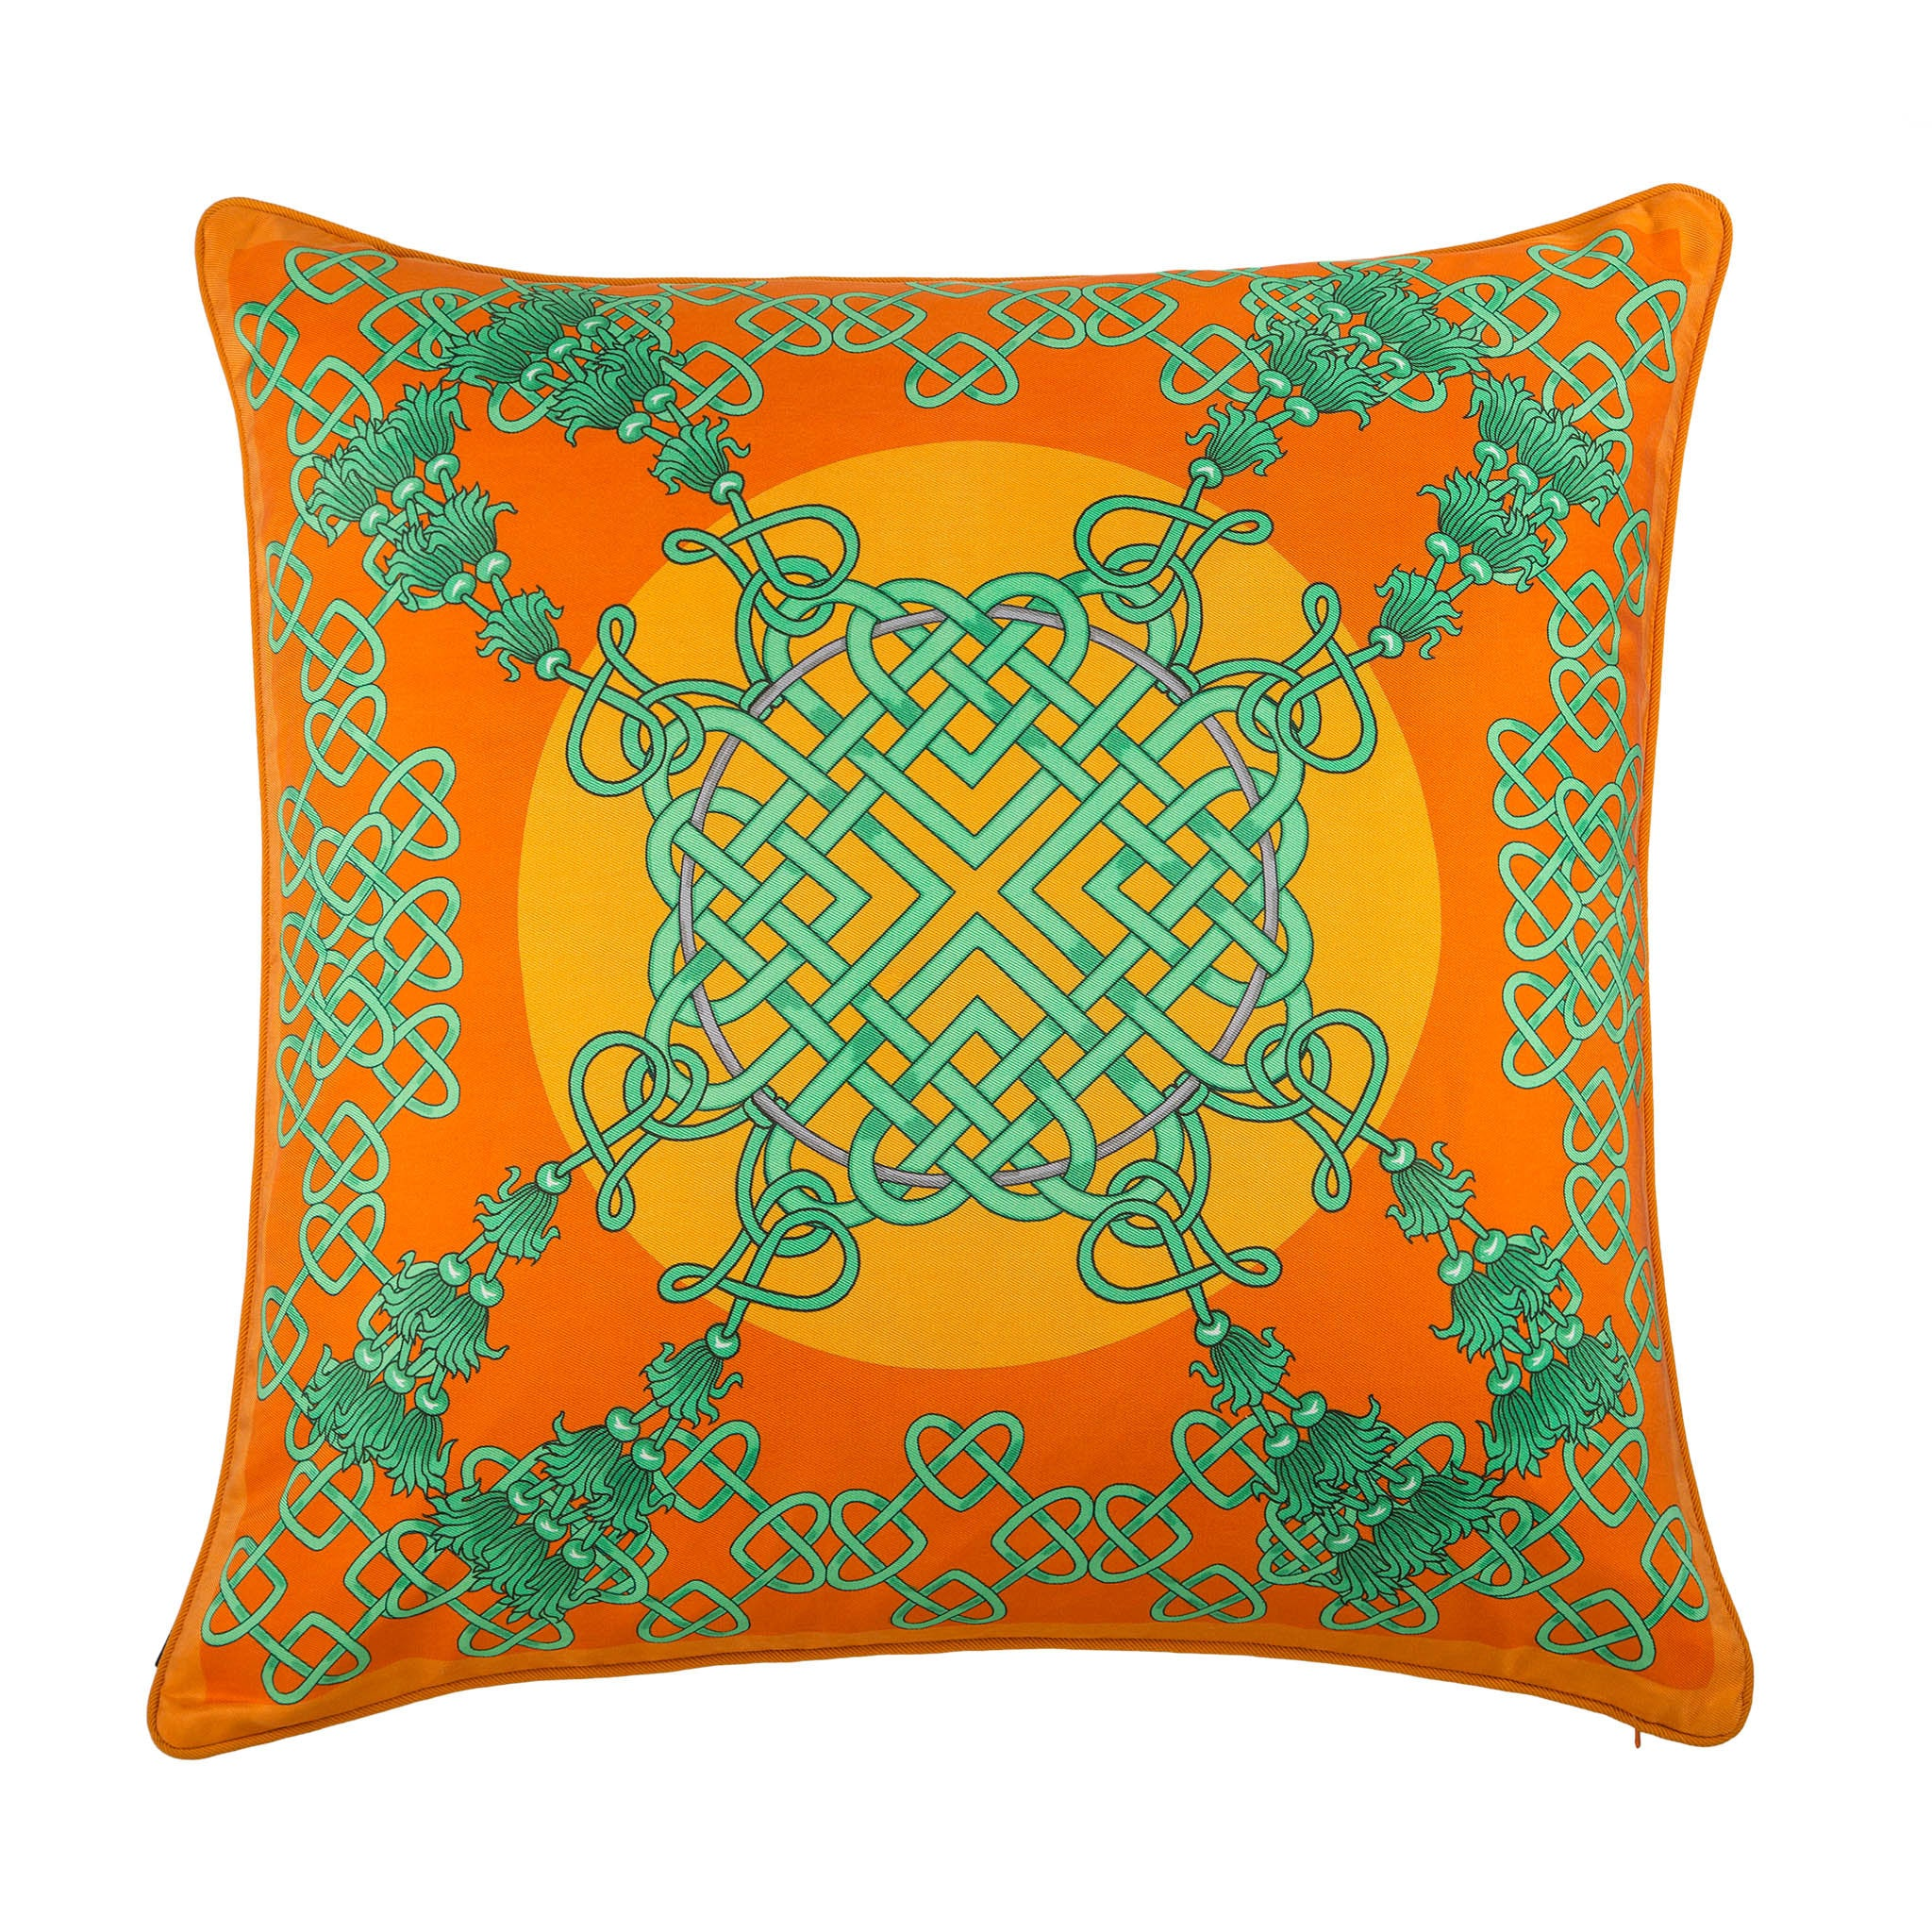 Silk twill orange & green Chinese knot print cushion - Bivain - 1